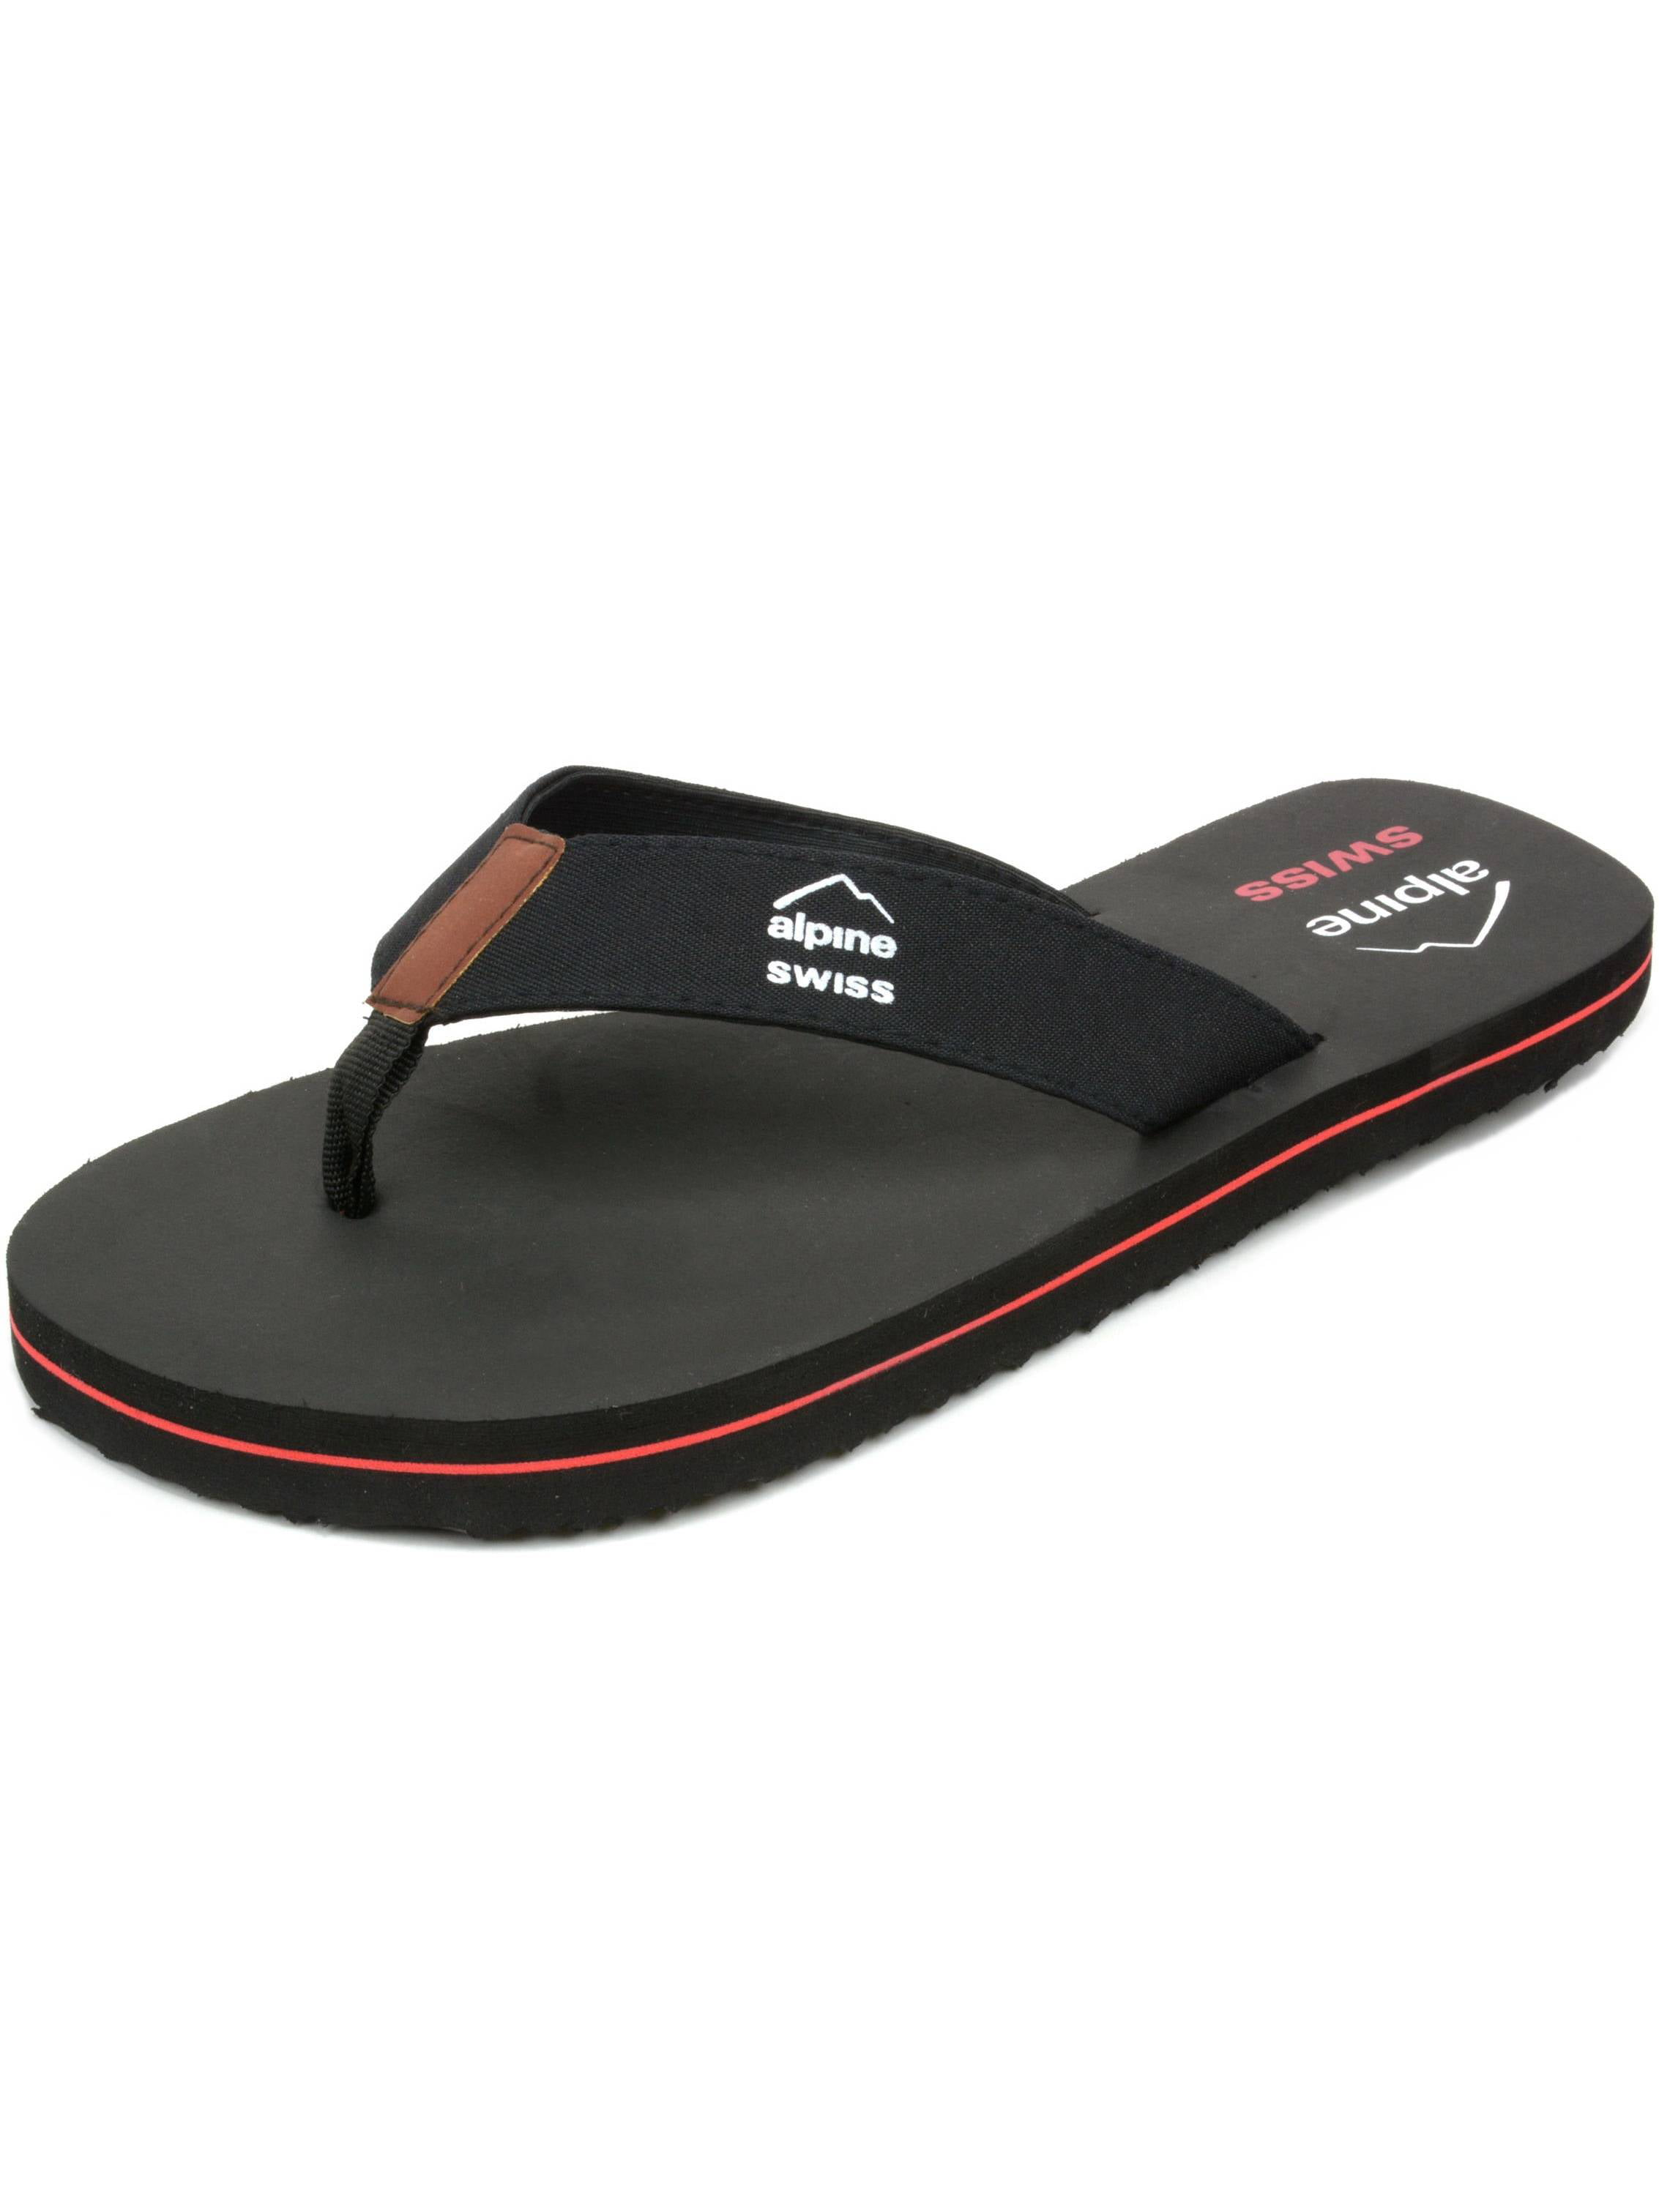 97d8d4e08 Alpine Swiss - alpine swiss men's flip flops beach sandals lightweight eva  sole comfort thongs - Walmart.com